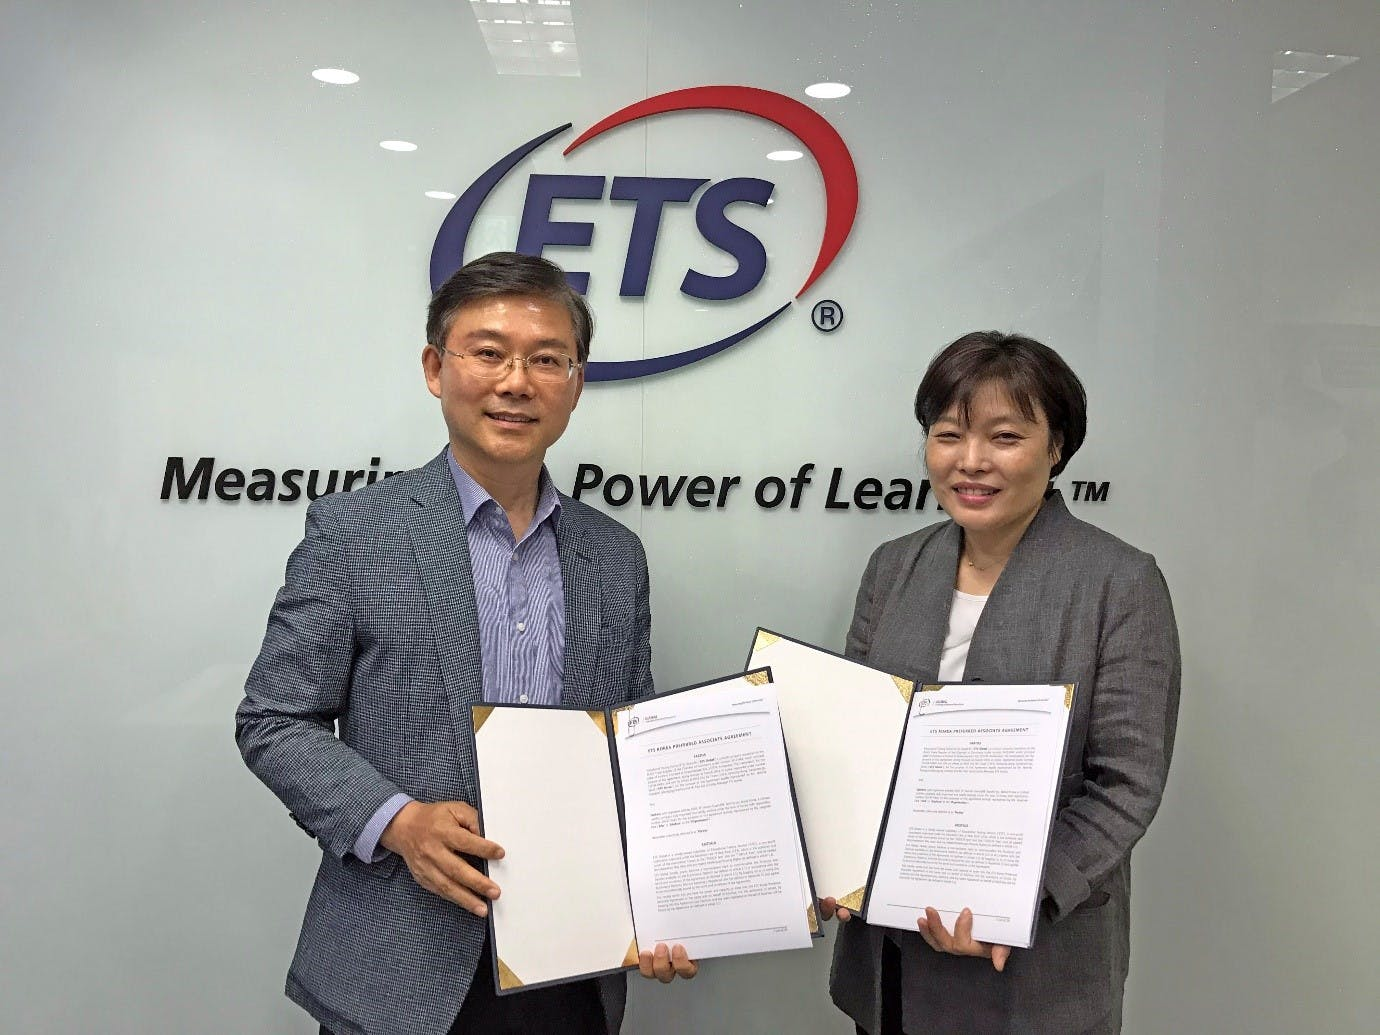 Paul Lee, Country Manager of ETS Global Korea and Ms Jangmee Park, CEO of EduFore